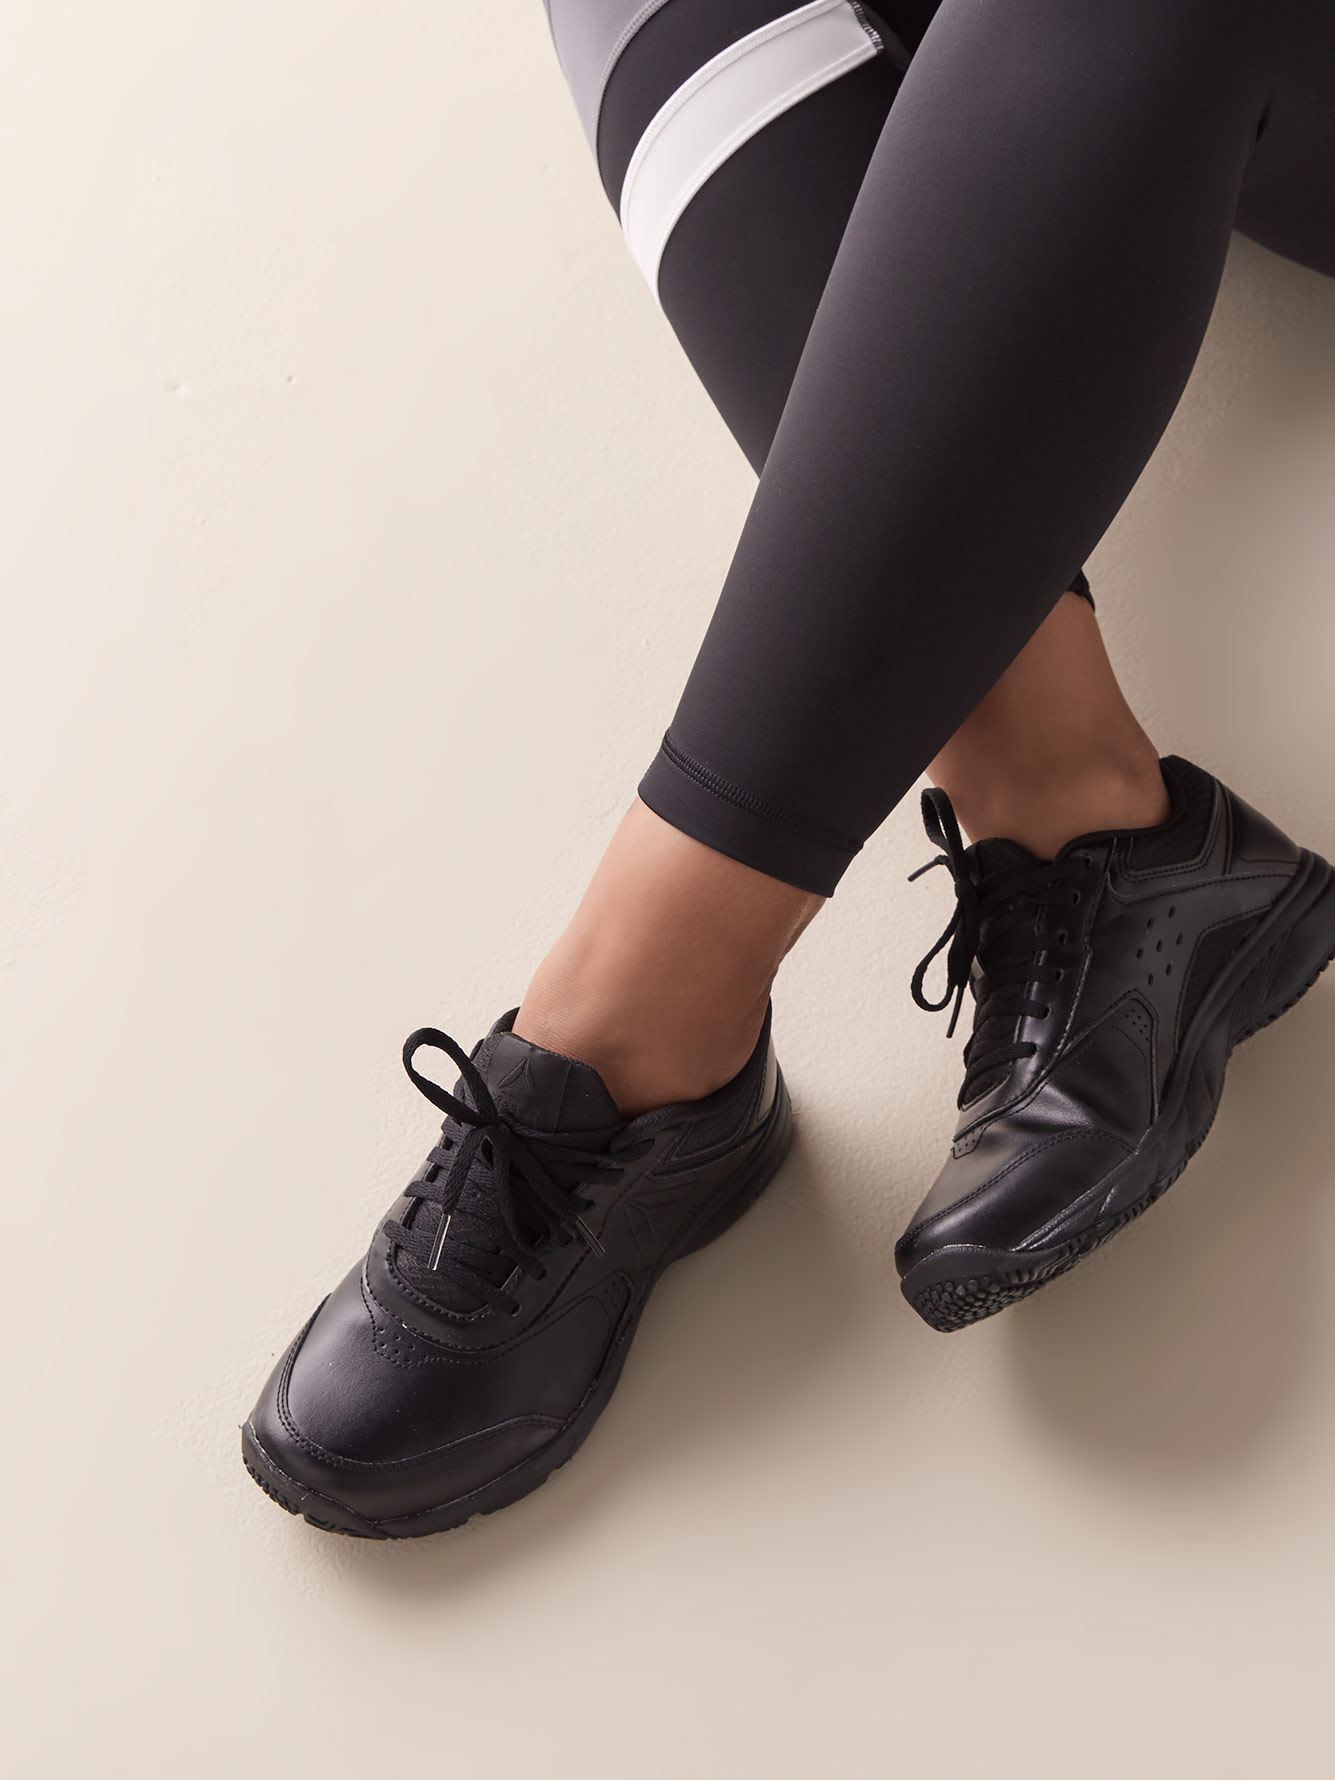 Chaussures de sport Work N Cushion, pieds larges - Reebok